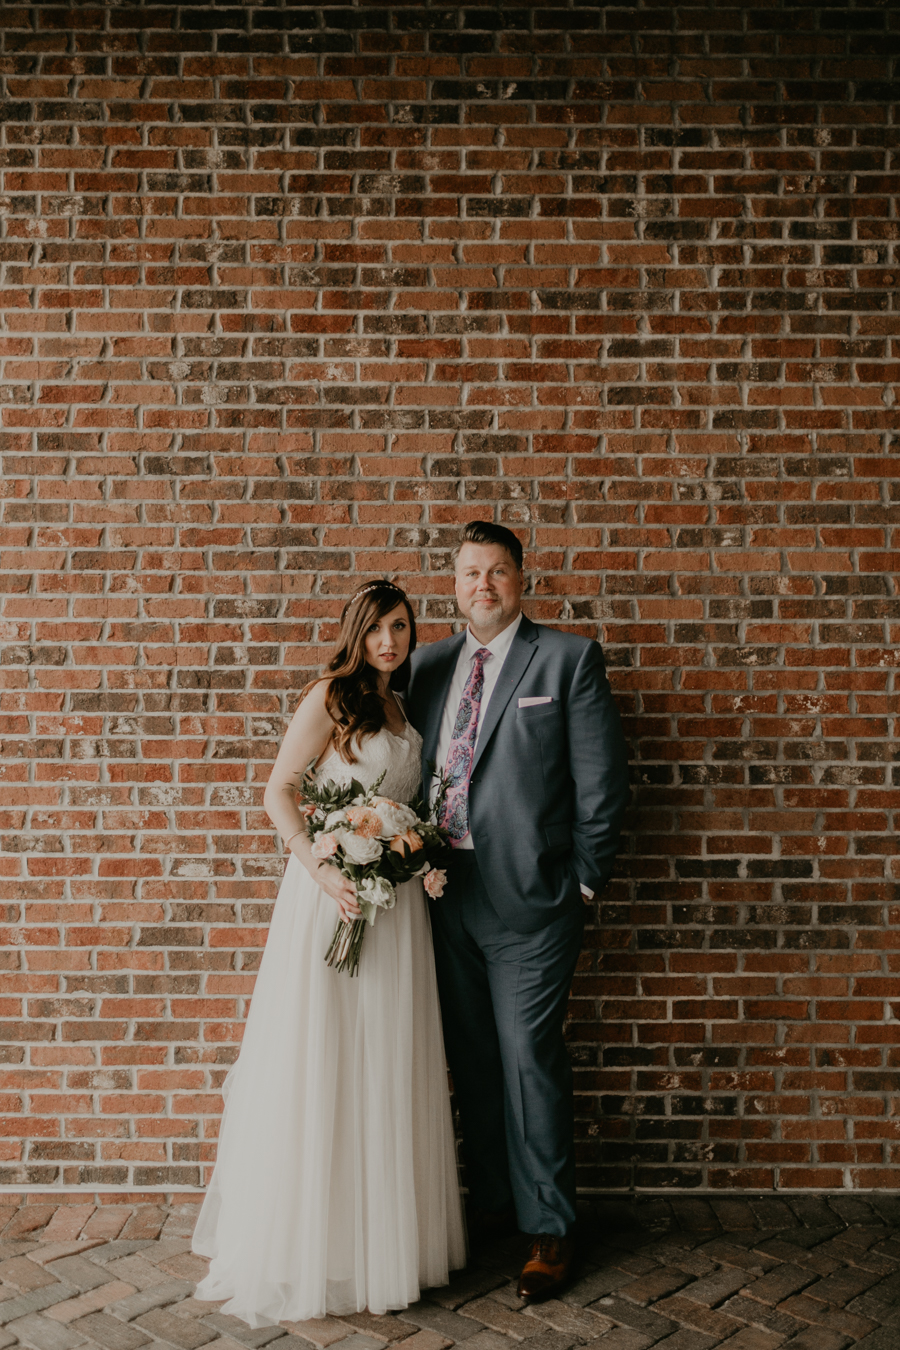 Stephanie And Kent Bailey Tampa Florida Romantic Wedding At Coppertail Brewery in Ybor Florist Fire BHLDN Mis En Place Ibex String Quartet Let Them Eat Cake -79.jpg